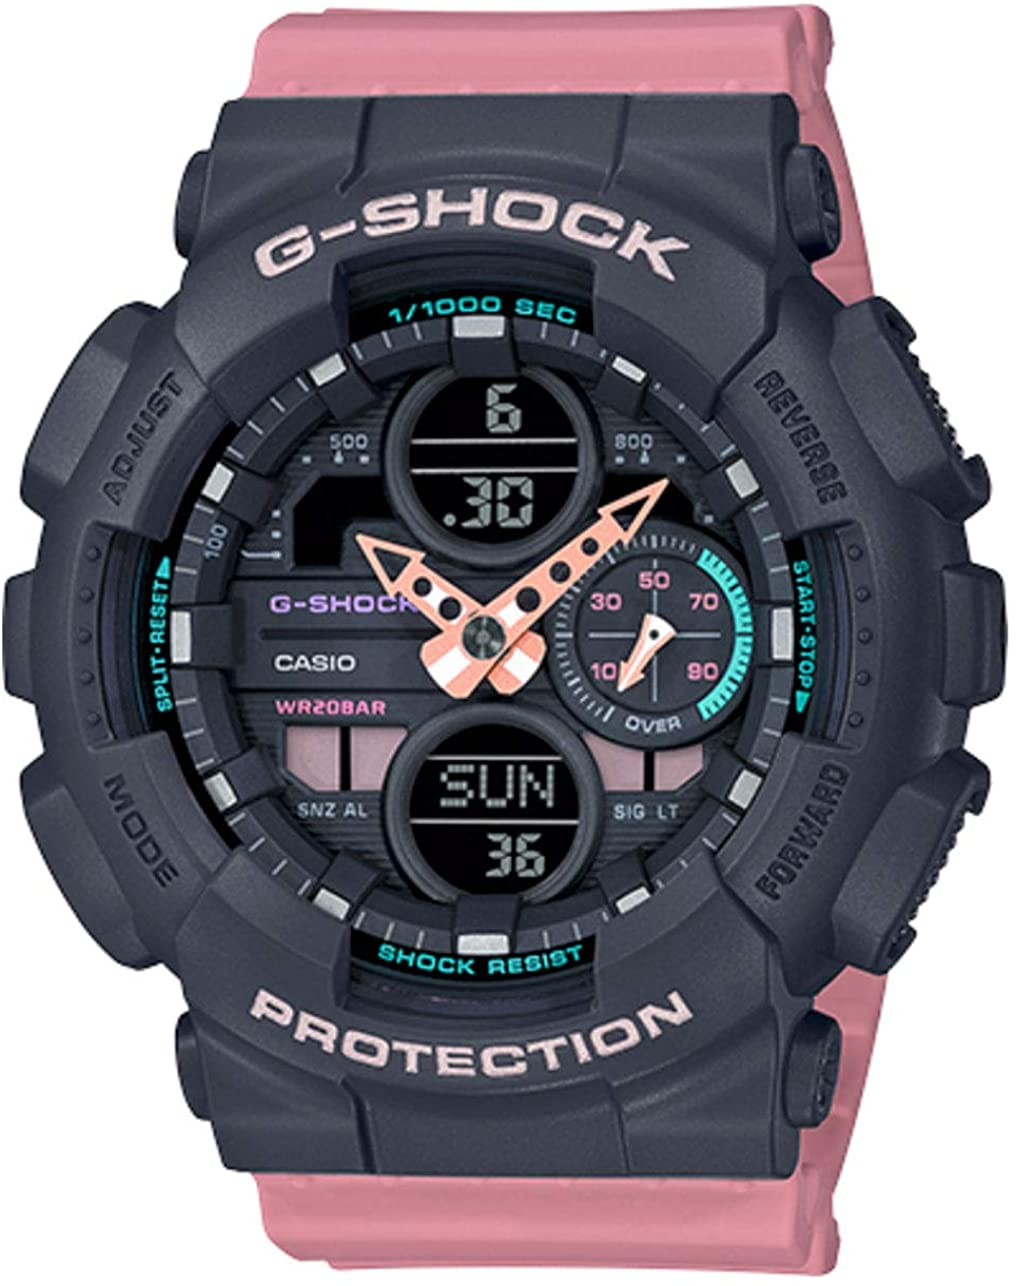 Casio G-Shock S-Series Pink Resin Band Watch